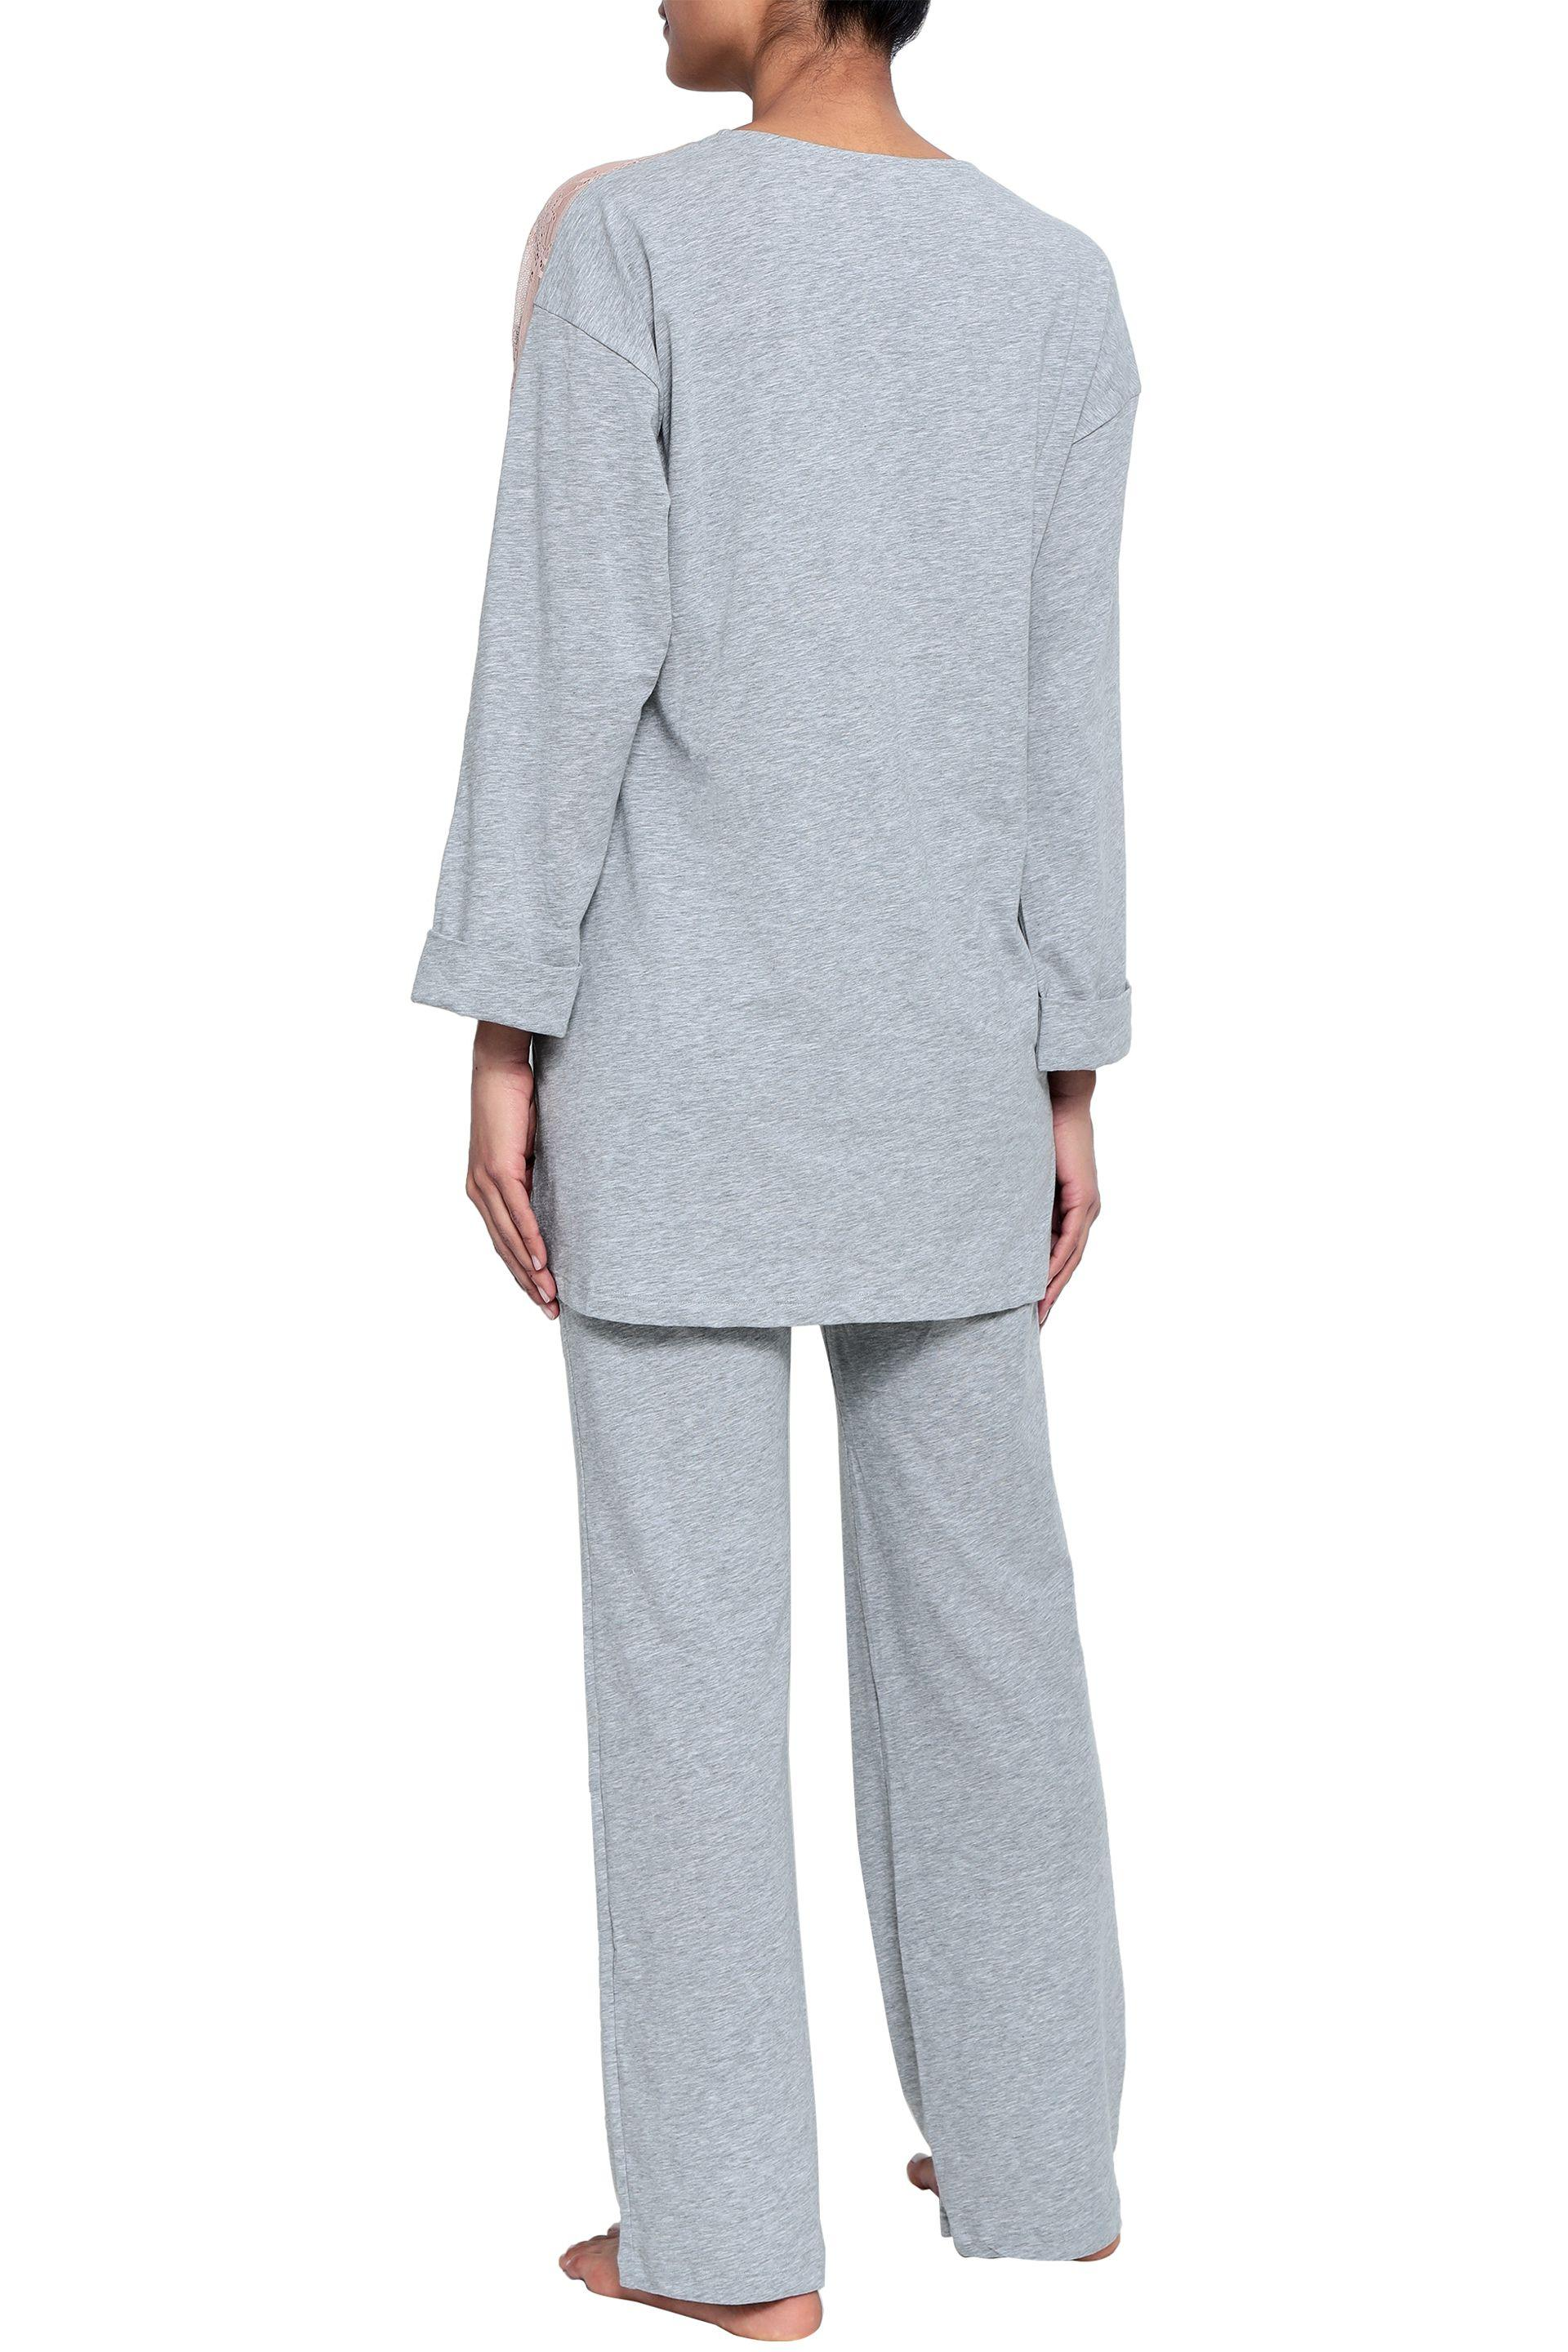 cosabella-Light-gray-Woman-Lace-trimmed-Melange-Cotton-blend-Jersey-Pajama- Top-Light-Gray.jpeg c11e2e78bb1